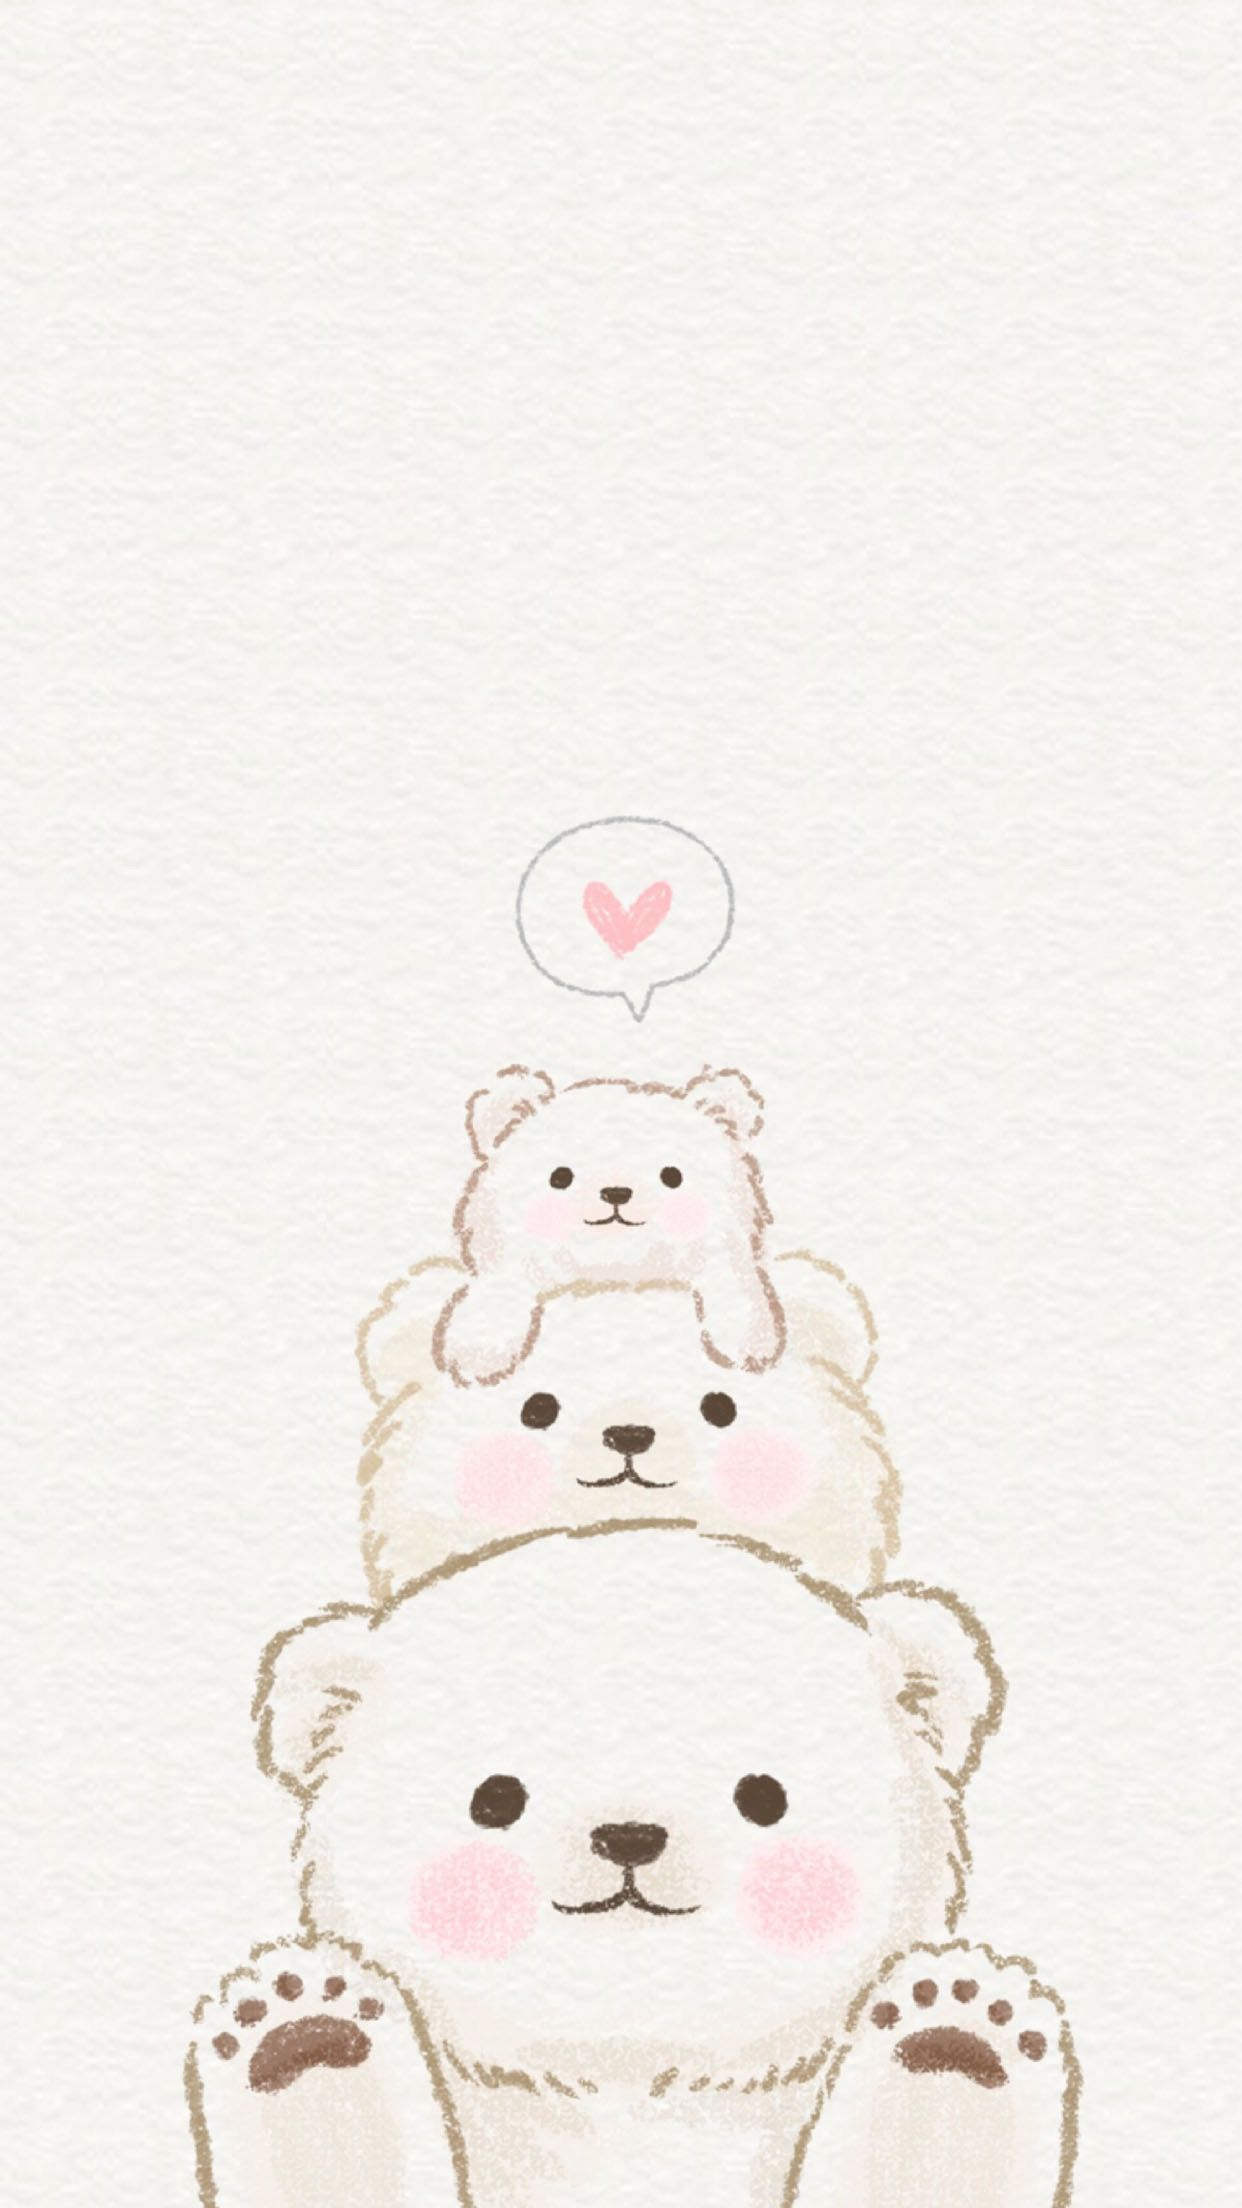 Bear Love Kawaii Wallpaper Cute Doodles Cute Wallpapers